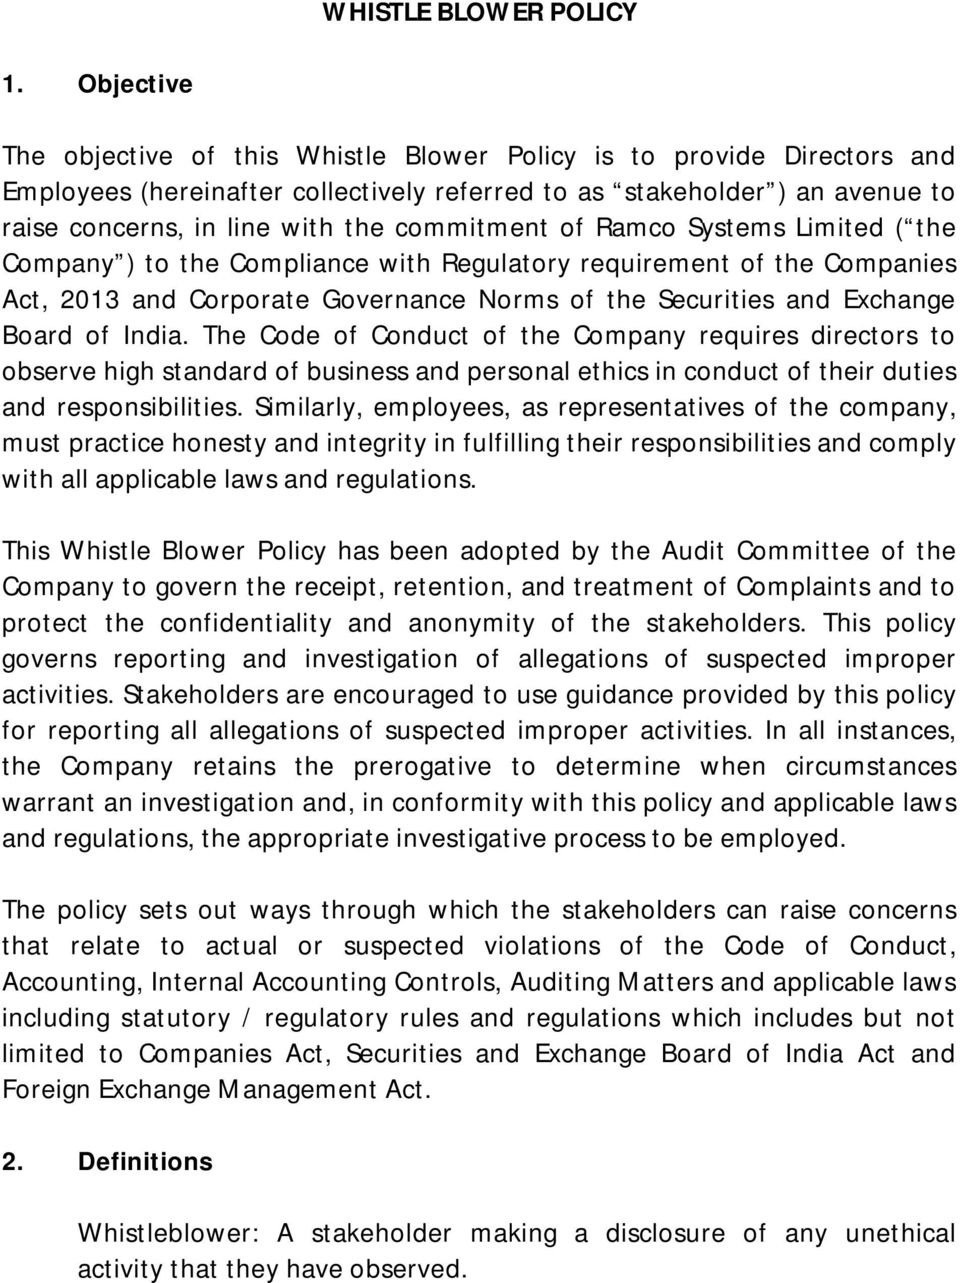 commitment of Ramco Systems Limited ( the Company ) to the Compliance with Regulatory requirement of the Companies Act, 2013 and Corporate Governance Norms of the Securities and Exchange Board of